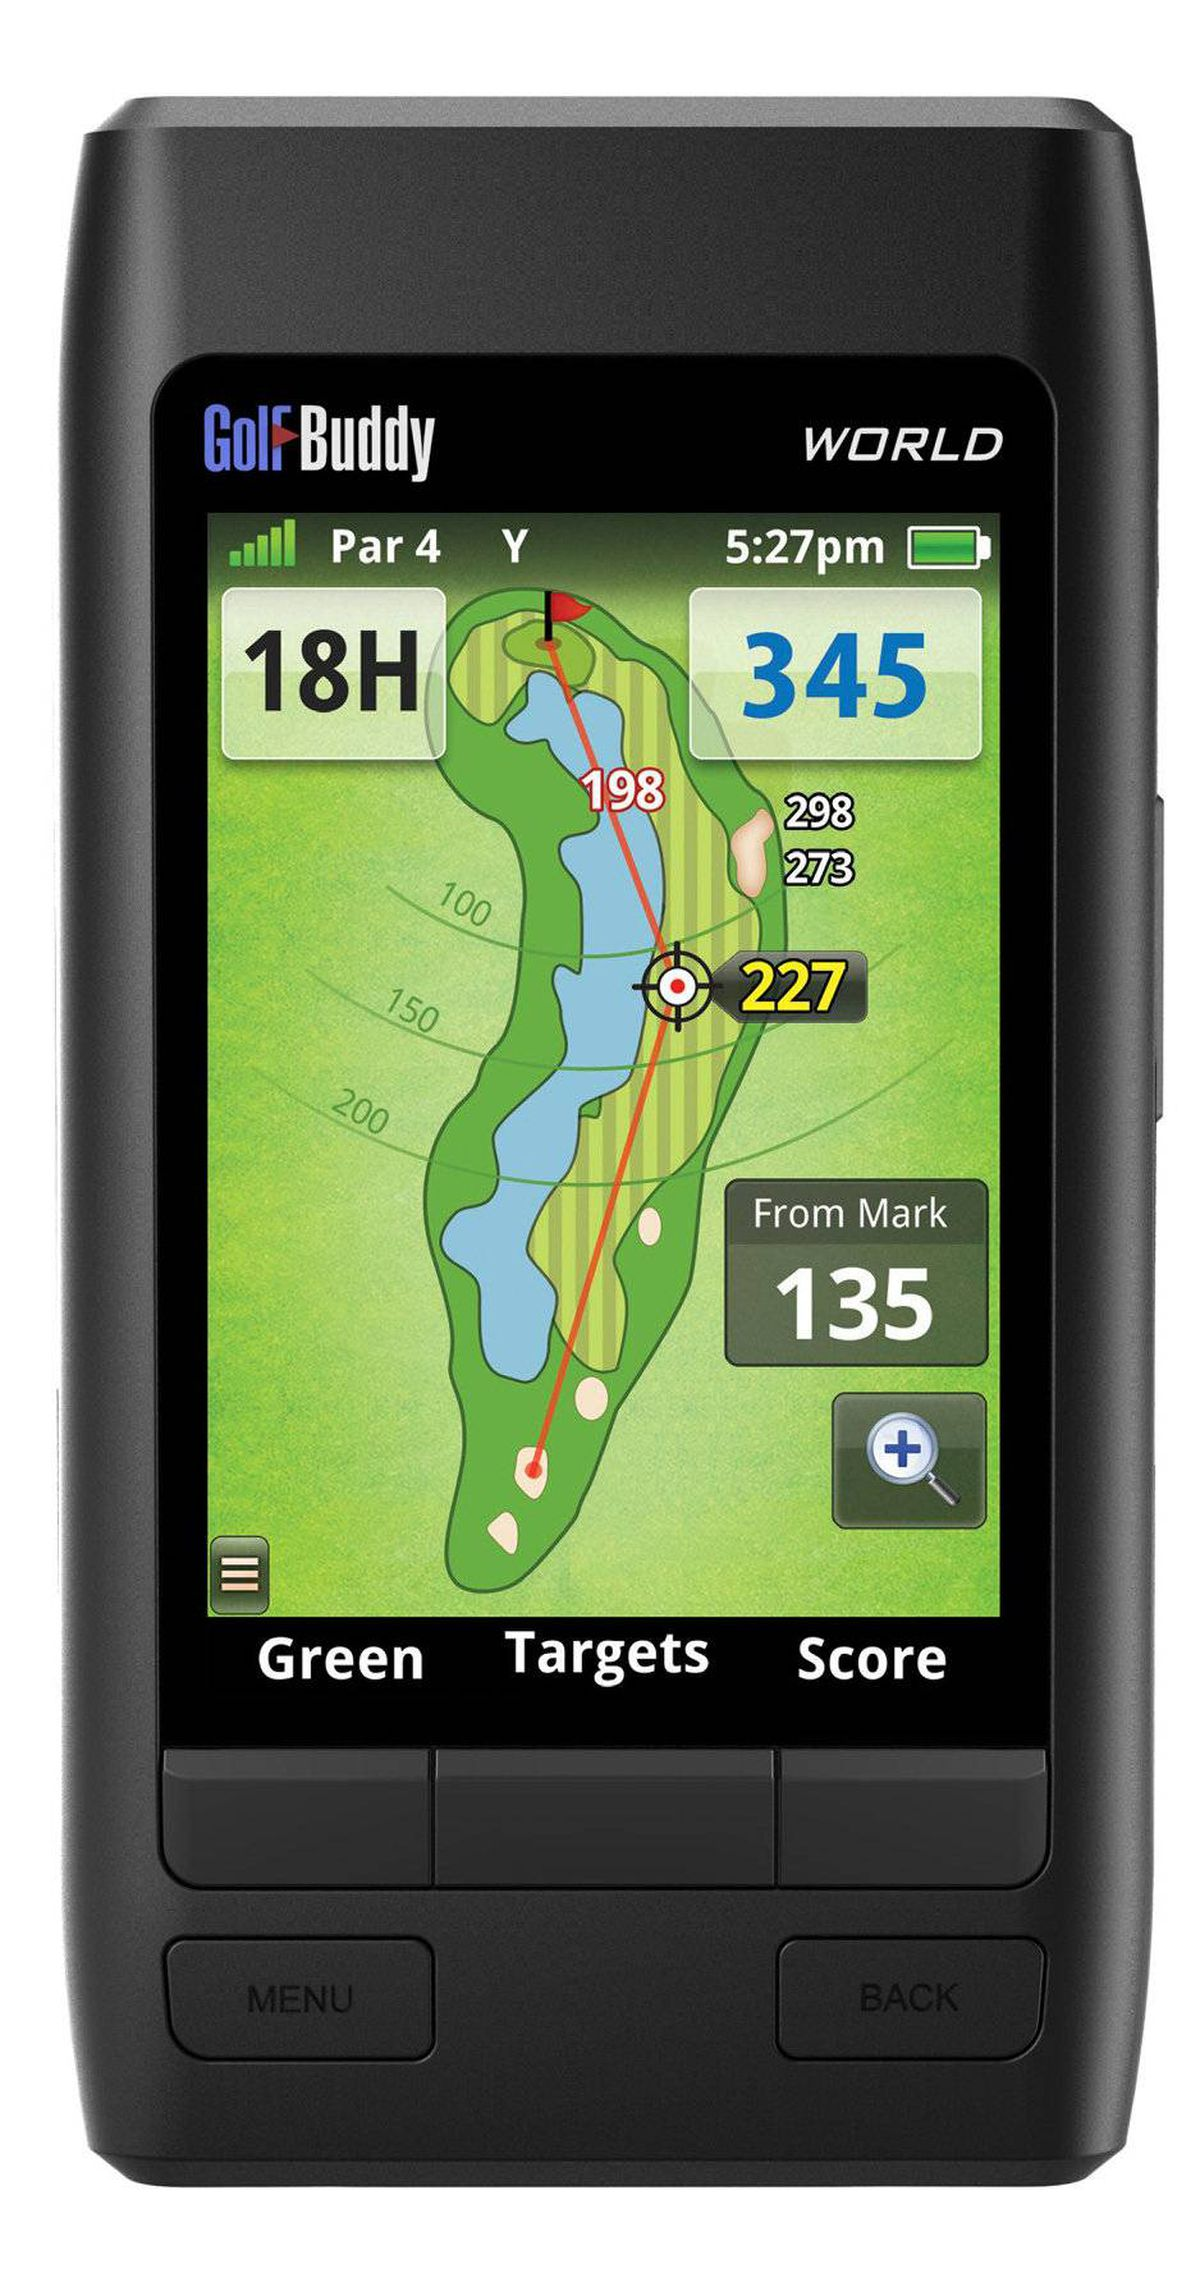 Play it Built for gadget-loving golfers who will do anything to get a leg up on the competition, GolfBuddy's World GPS Range finder is the ultimate digital golf caddy. With its 40,000-course worldwide library and an automatic course and hole recognition feature, it follows you from hole to hole, mapping out distance to greens and bunkers. It also warns of hazards and lakes, but stops short of giving tips on how to improve your swing. golfbuddyglobal.com, $349.99 (U.S.)